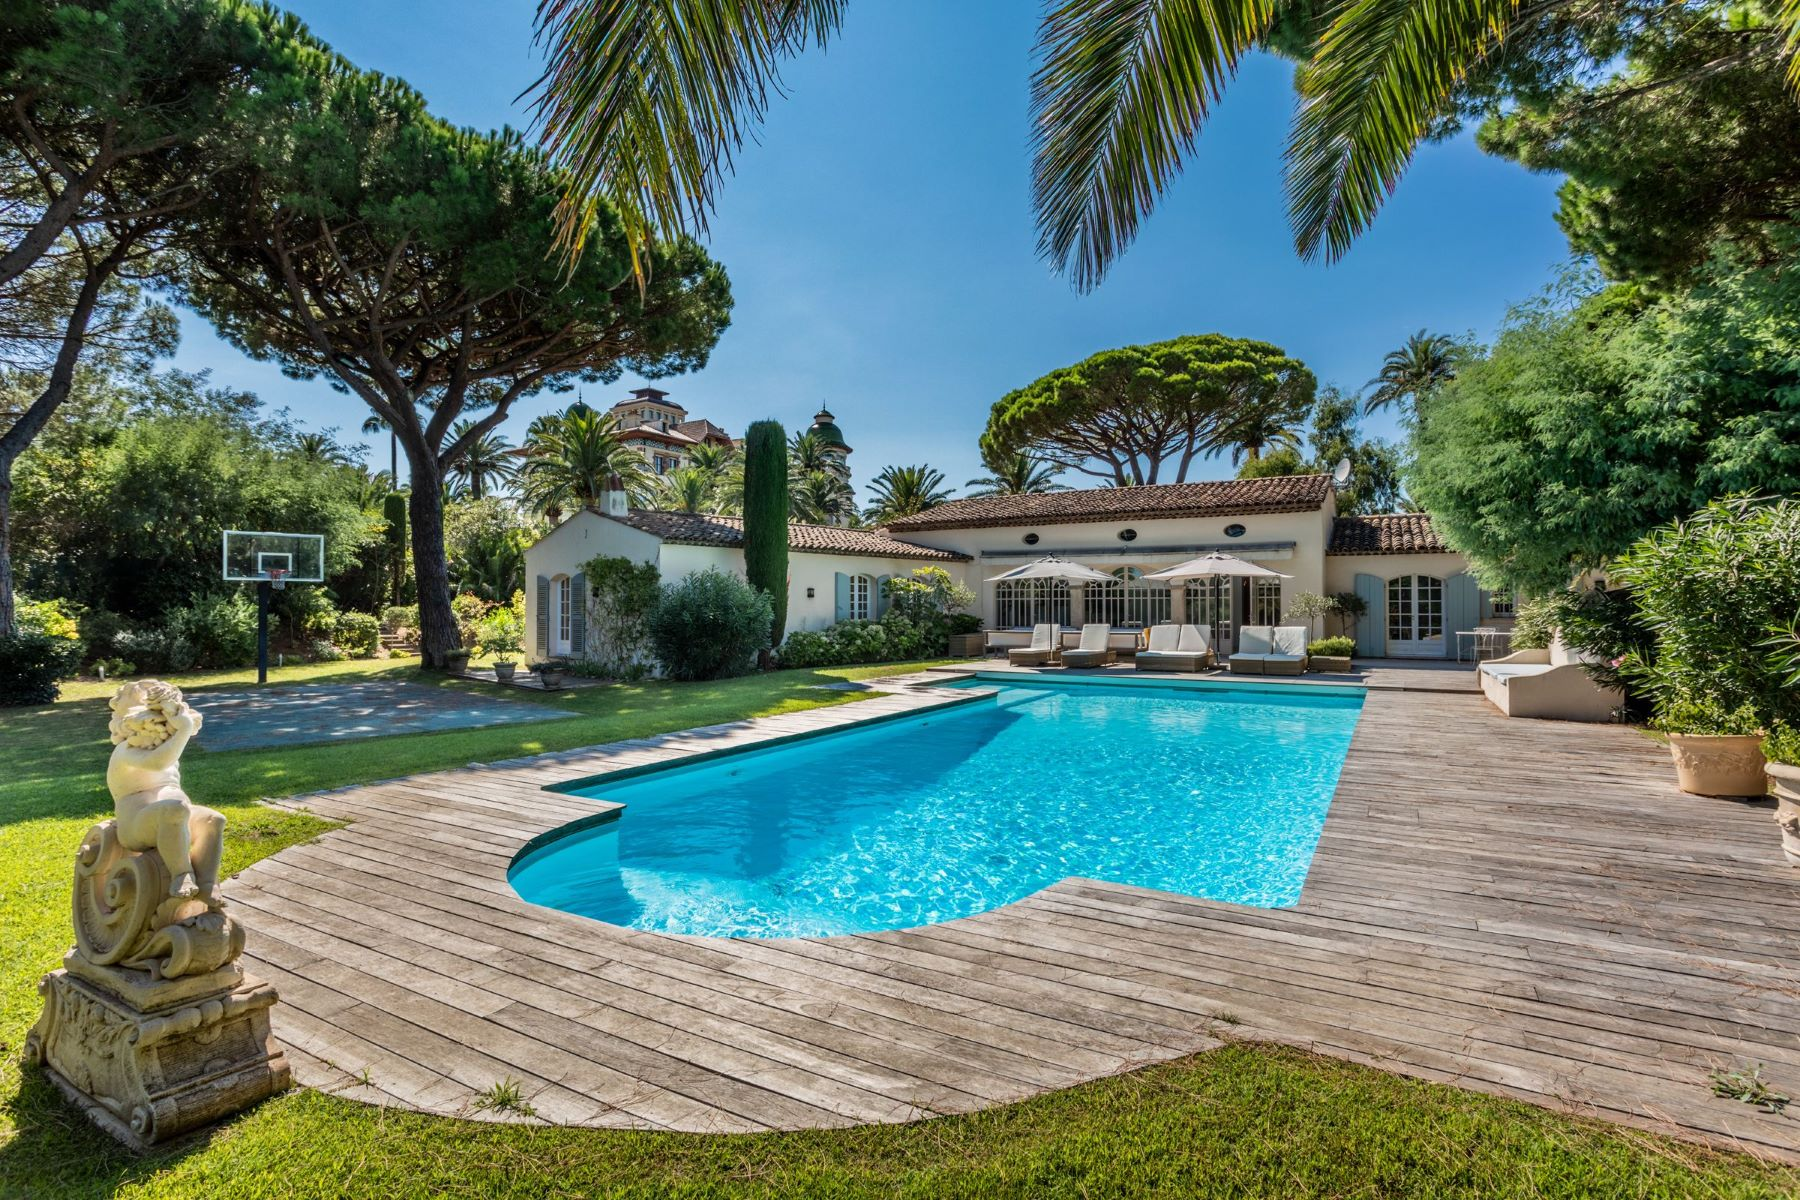 Property for Sale at Sole agent - Villa for sale - Les Parcs de Saint-Tropez (83990) Saint Tropez, Provence-Alpes-Cote D'Azur 83990 France